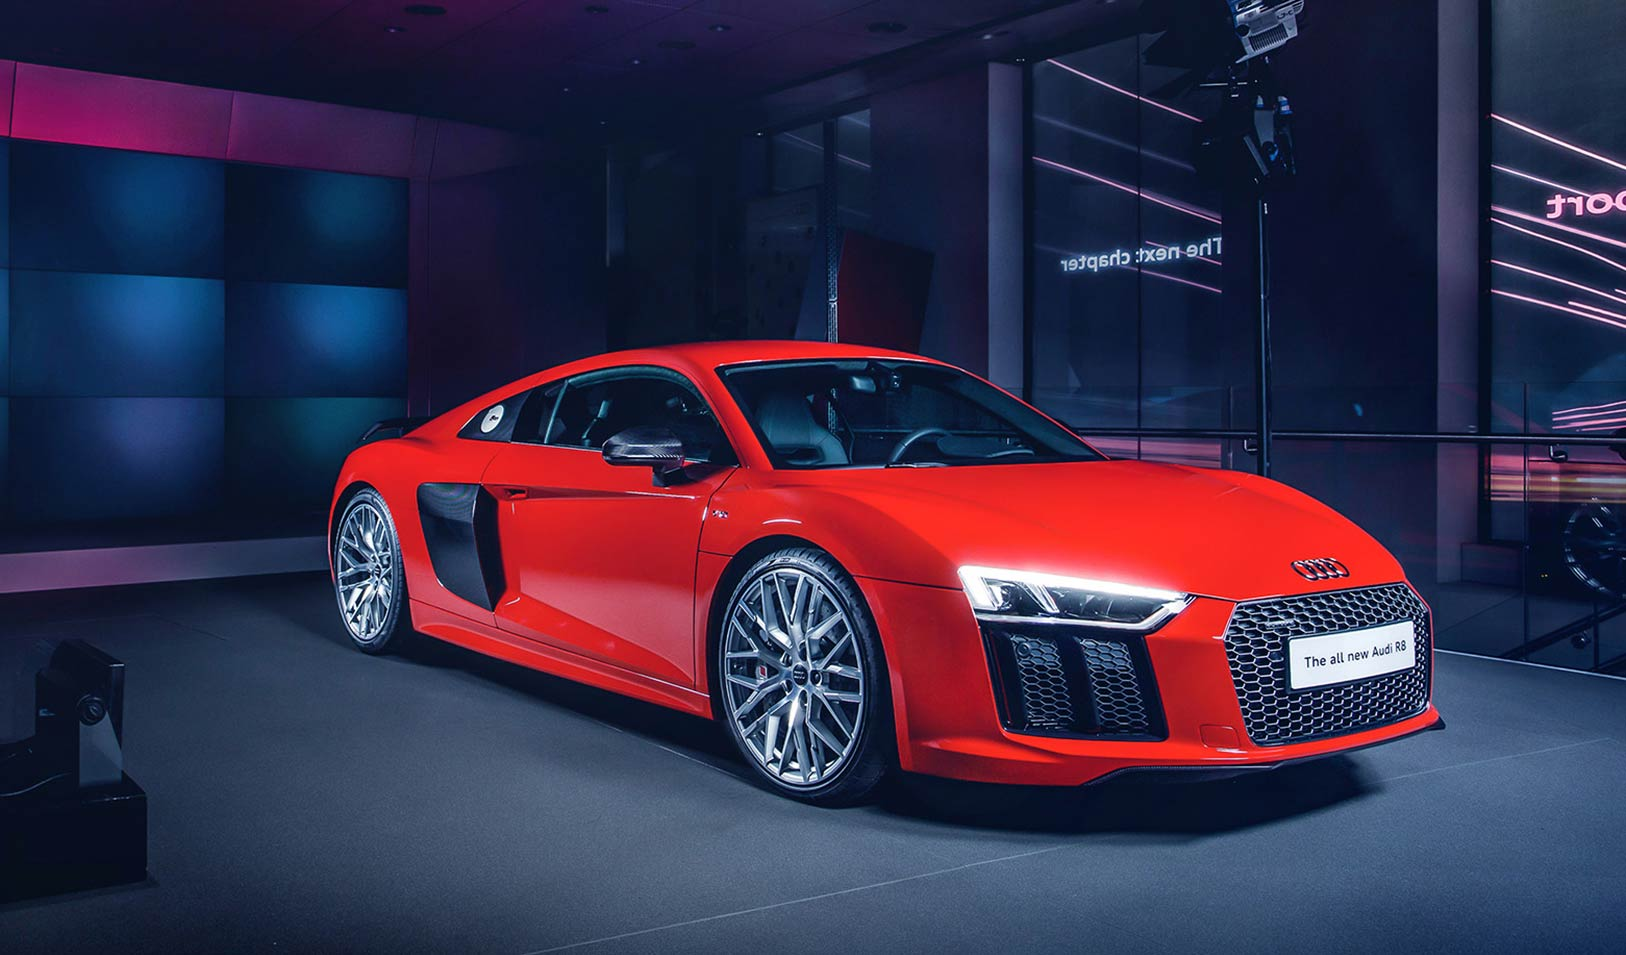 The new Audi R8 supercar is under starters orders